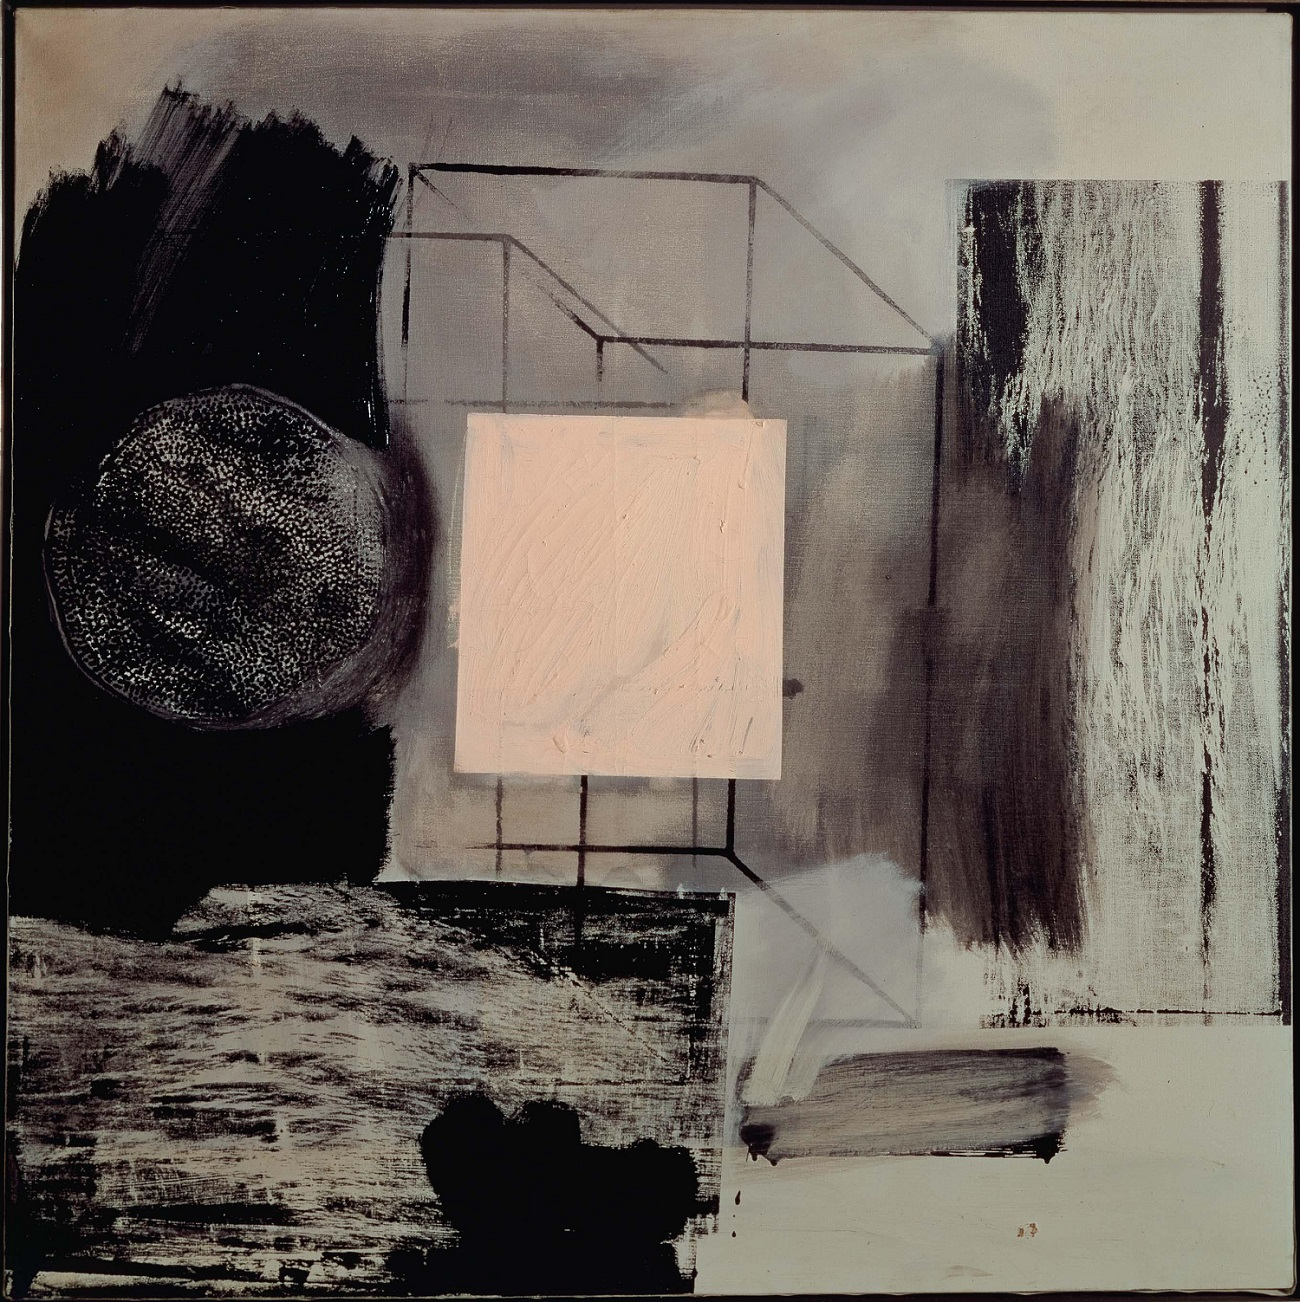 Robert Rauschenberg, Renascence, 1962, ol and silkscreen ink on canvas, 91.4 x 91.4 cm